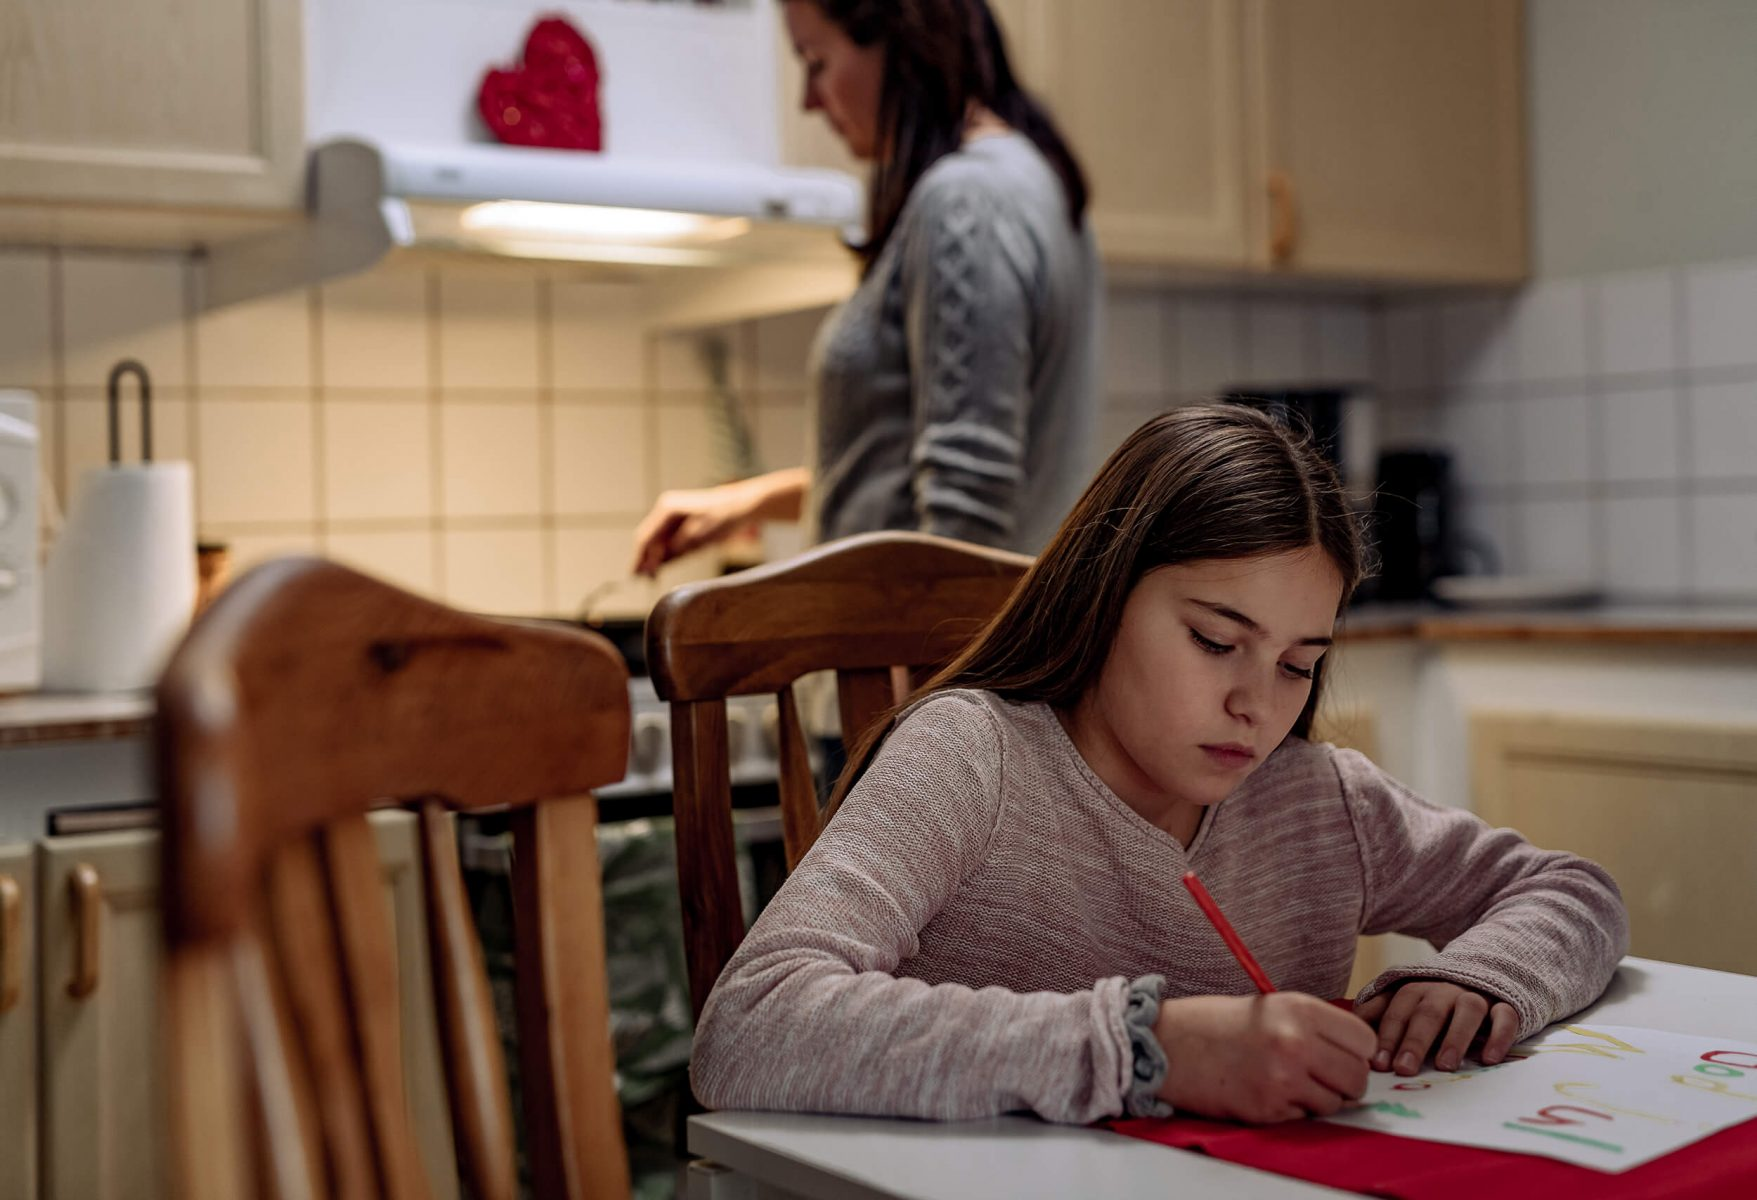 Kid making a Christmas card in kitchen. Looks bored and sad